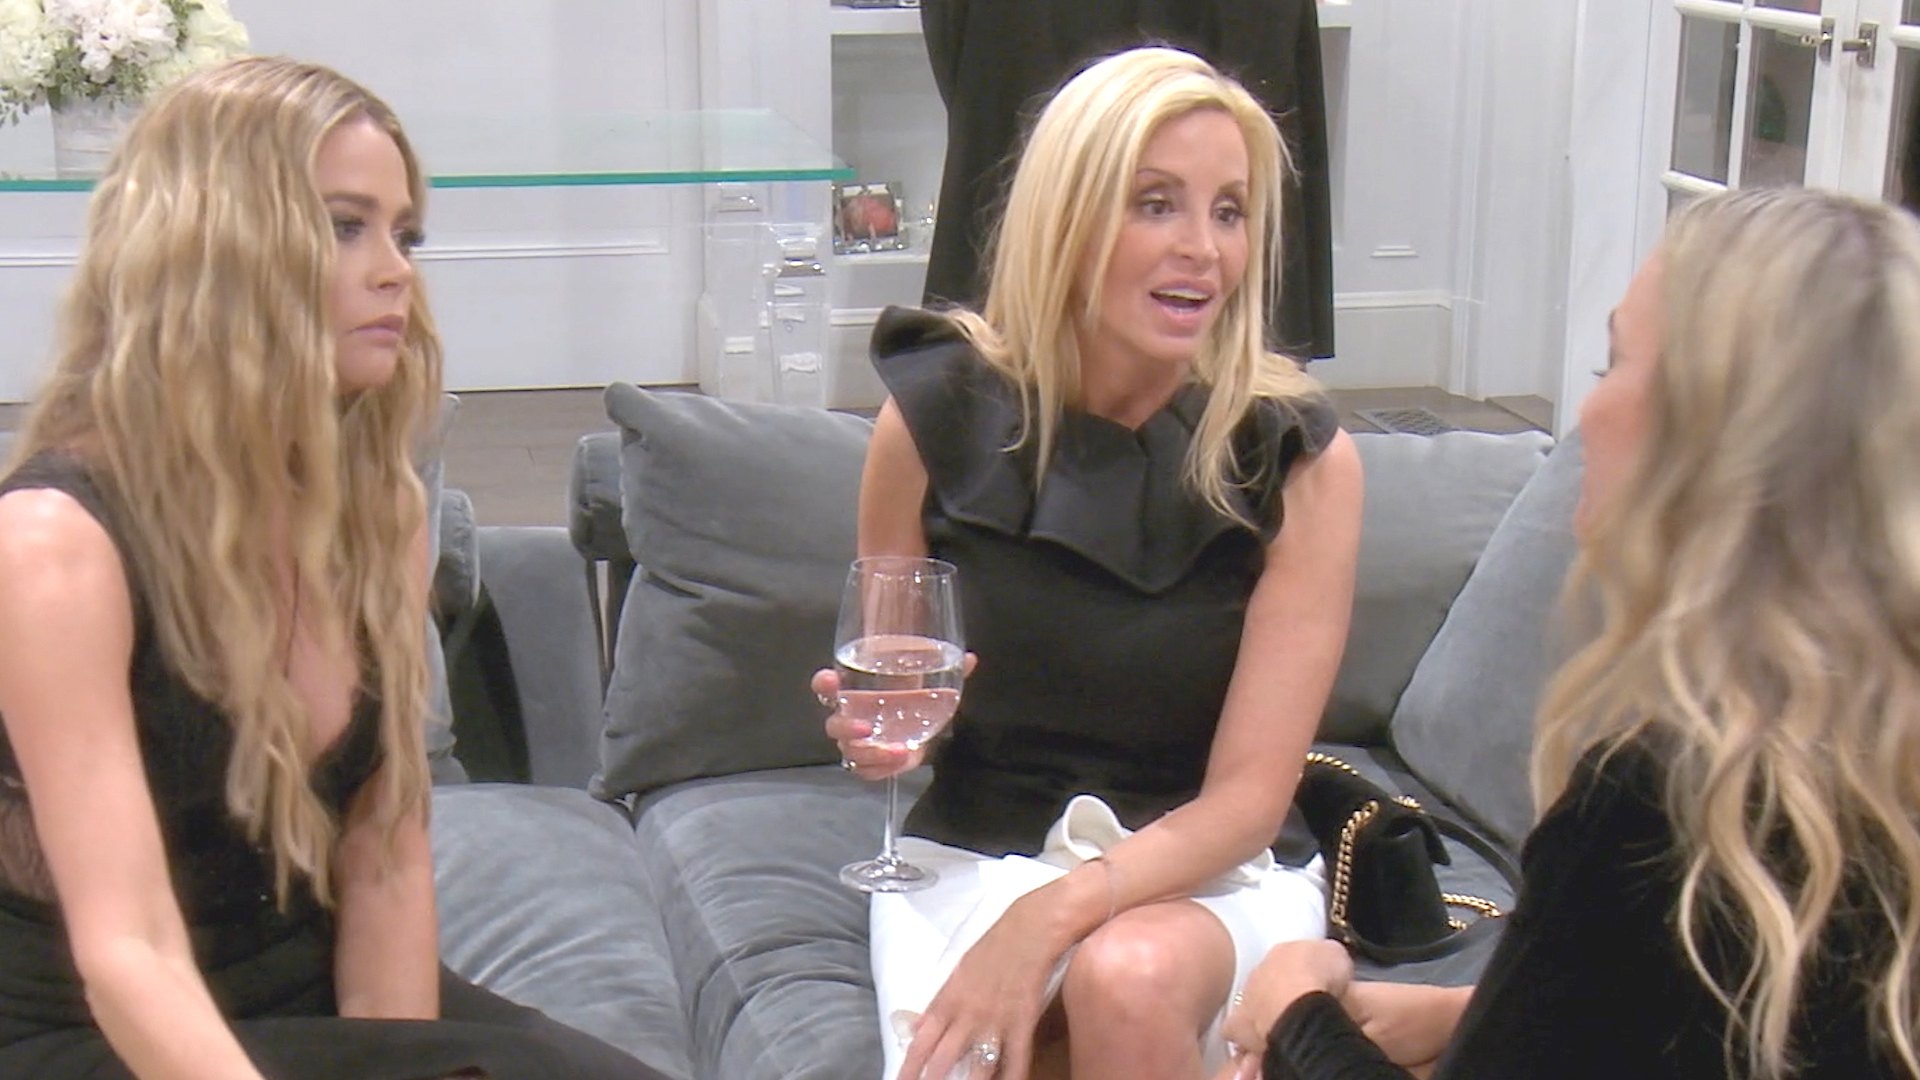 Camille Grammer Is Back...and So Is Brandi Glanville